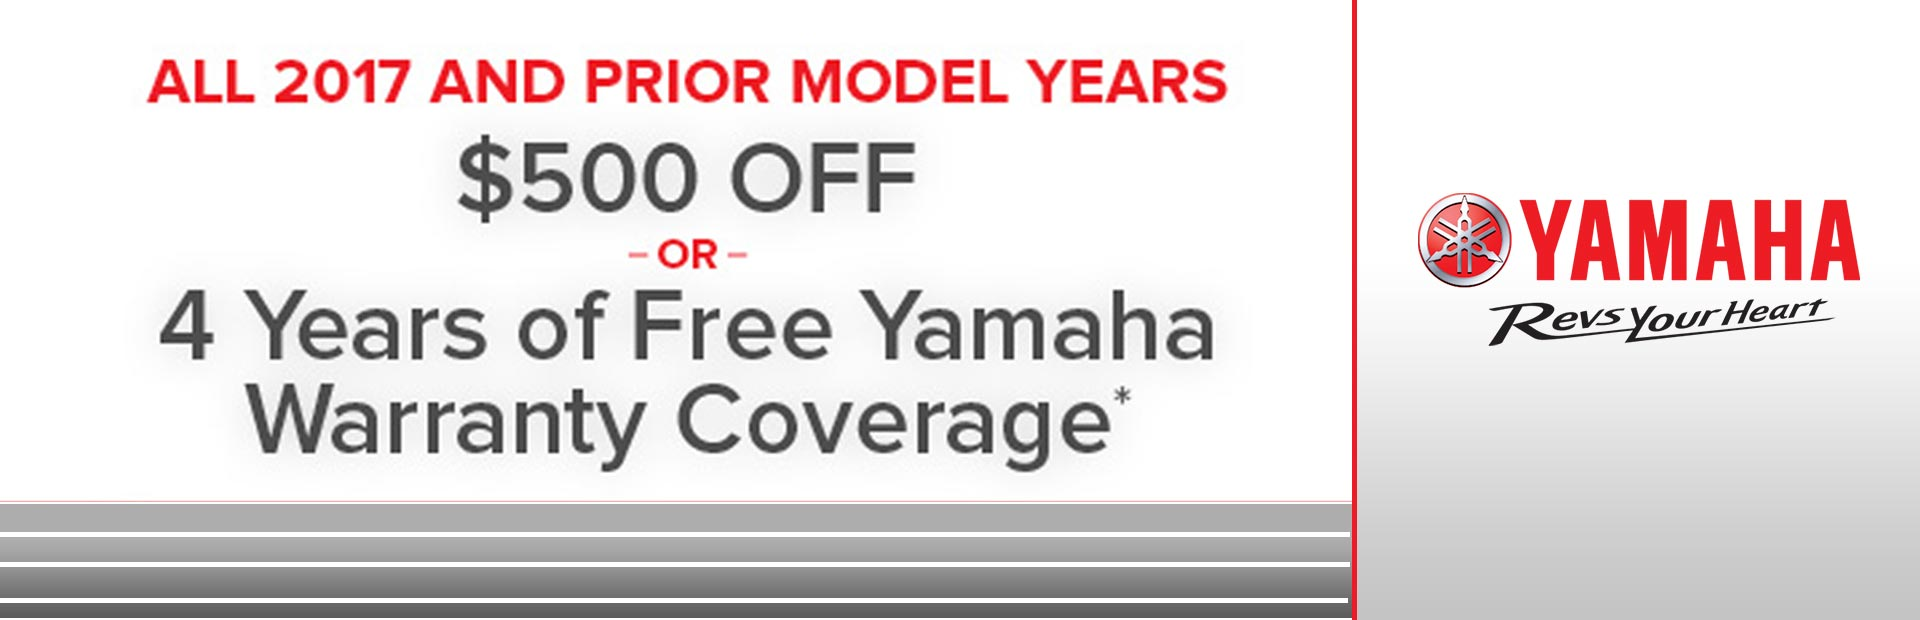 Yamaha: $500 Off / 4 Years of Free Warranty Coverage